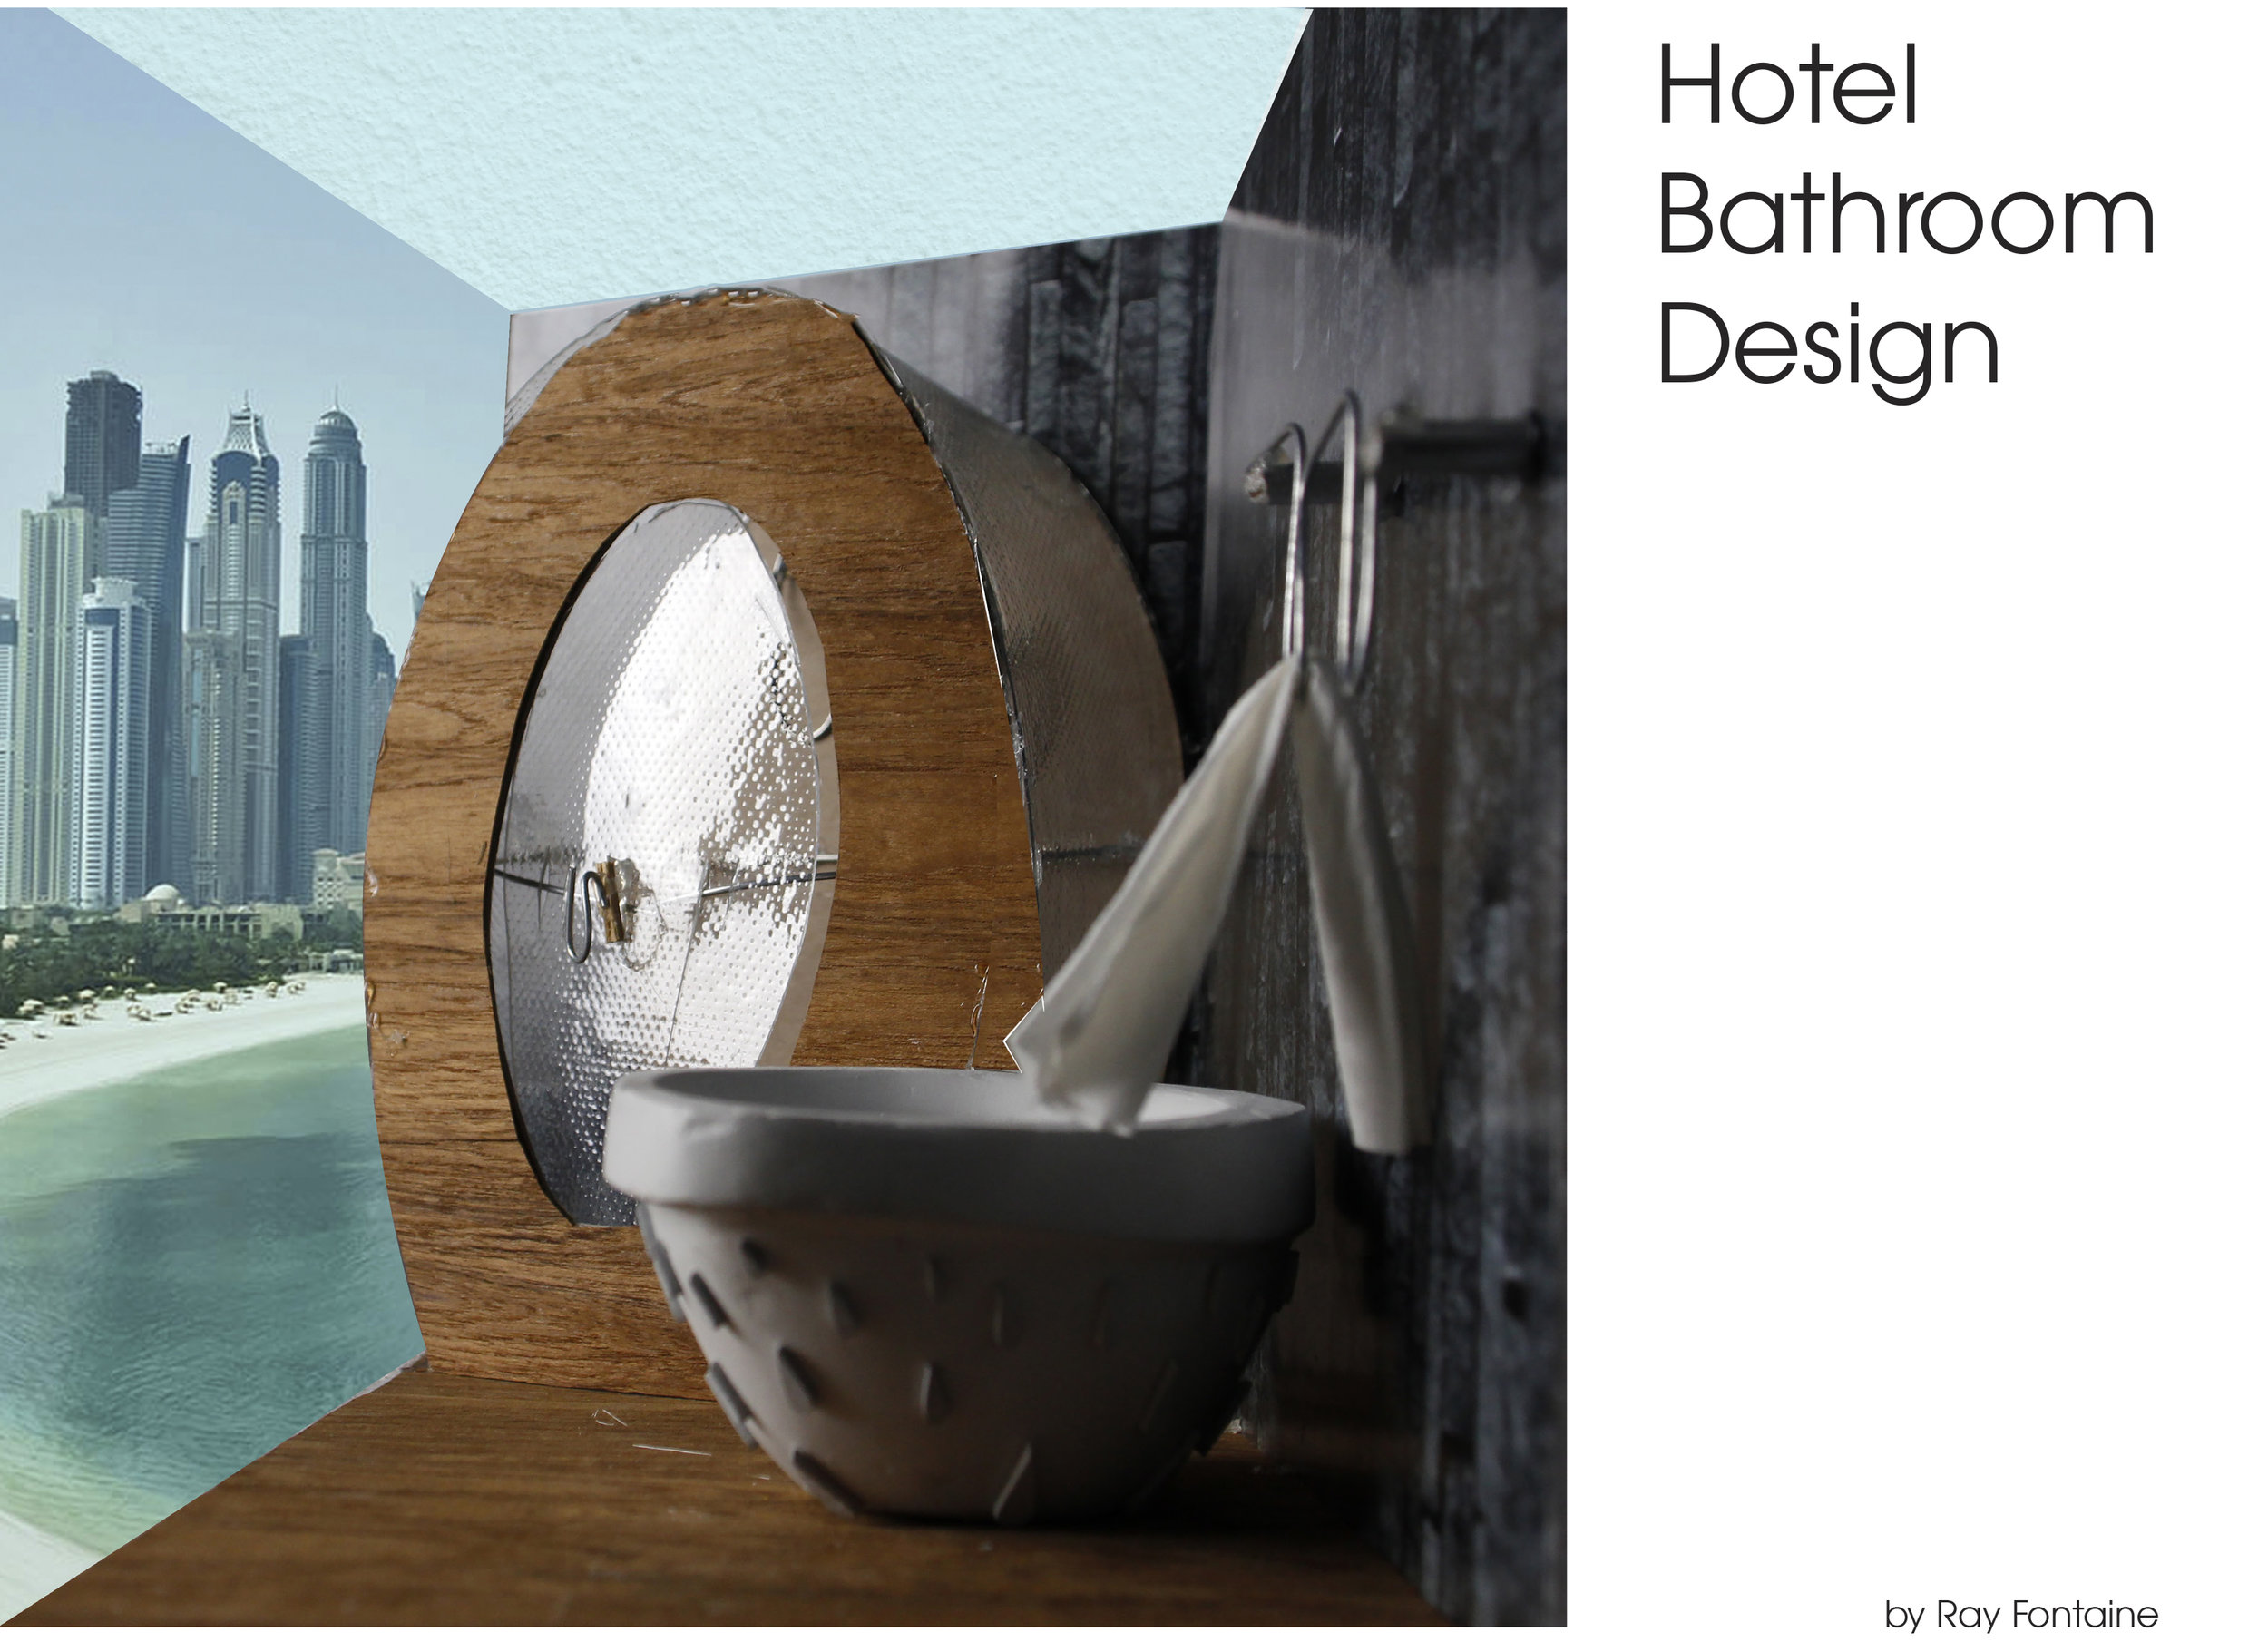 Designed for a new ornate luxury hotel in Dubai with views overlooking the beach and skyline, the FLUIDITY bathroom fixtures embody the water and riches surrounding this port city.